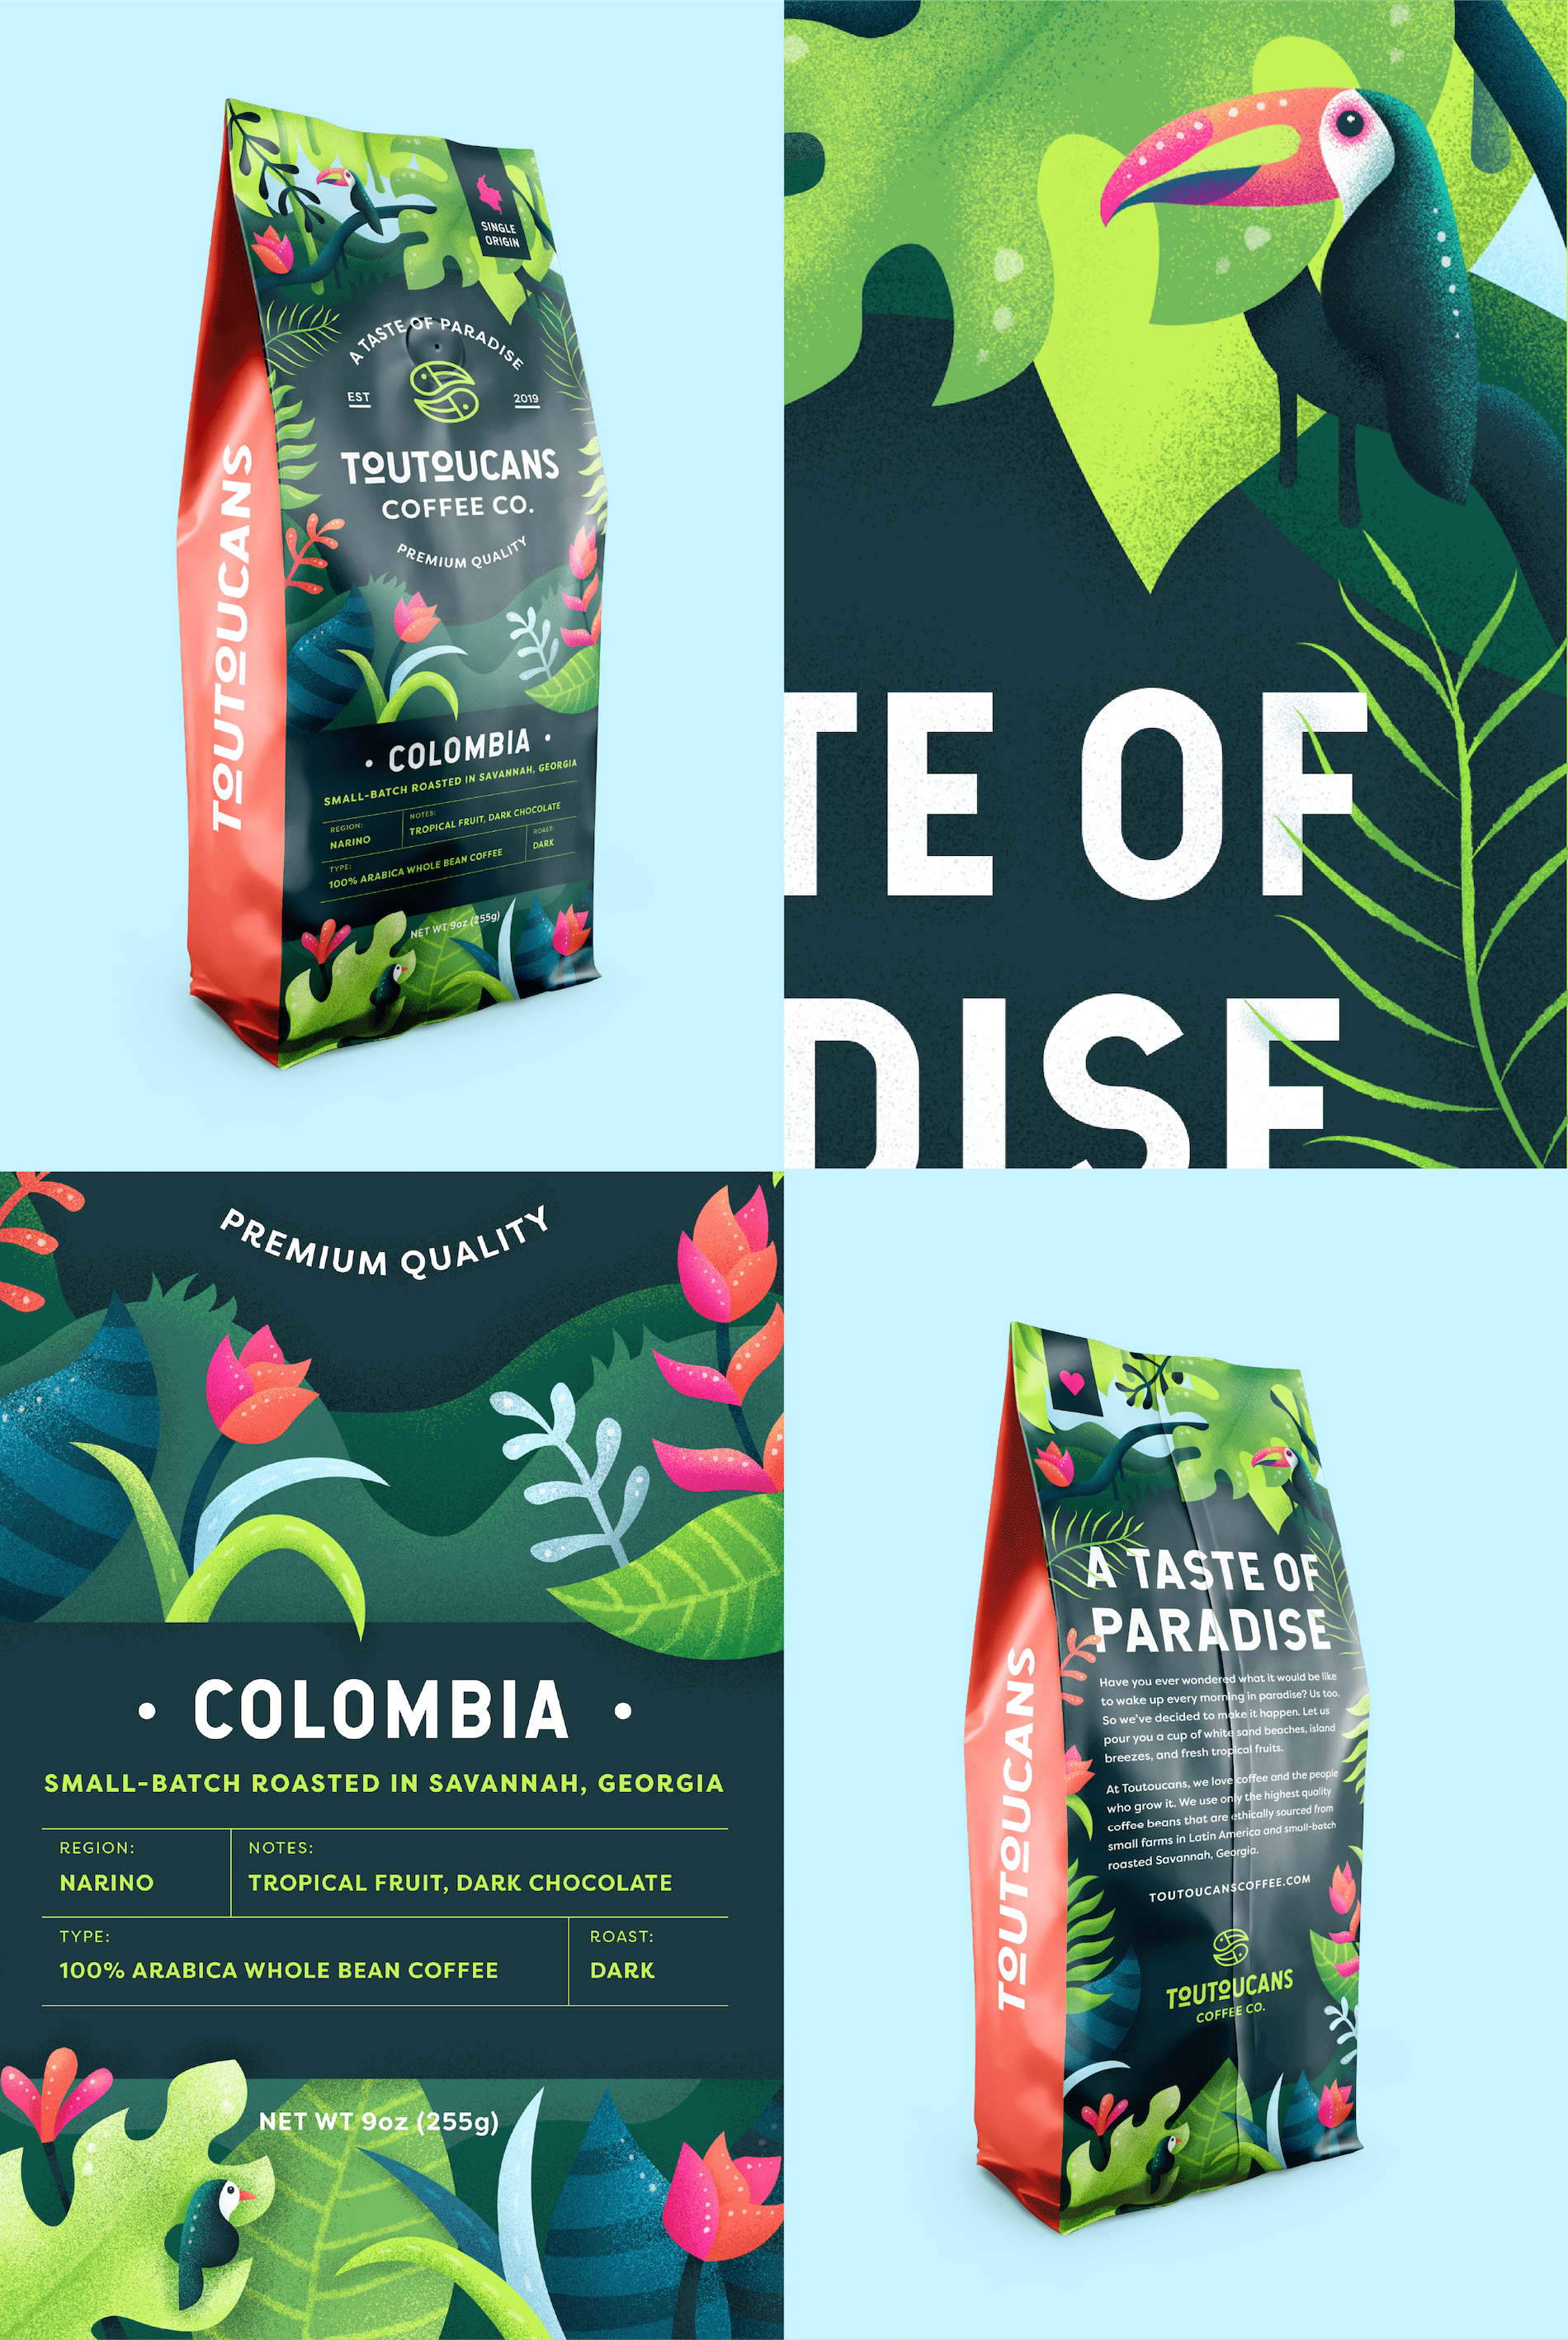 Branding And Package Design On Behance In 2020 Food Packaging Design Packaging Design Creative Packaging Design